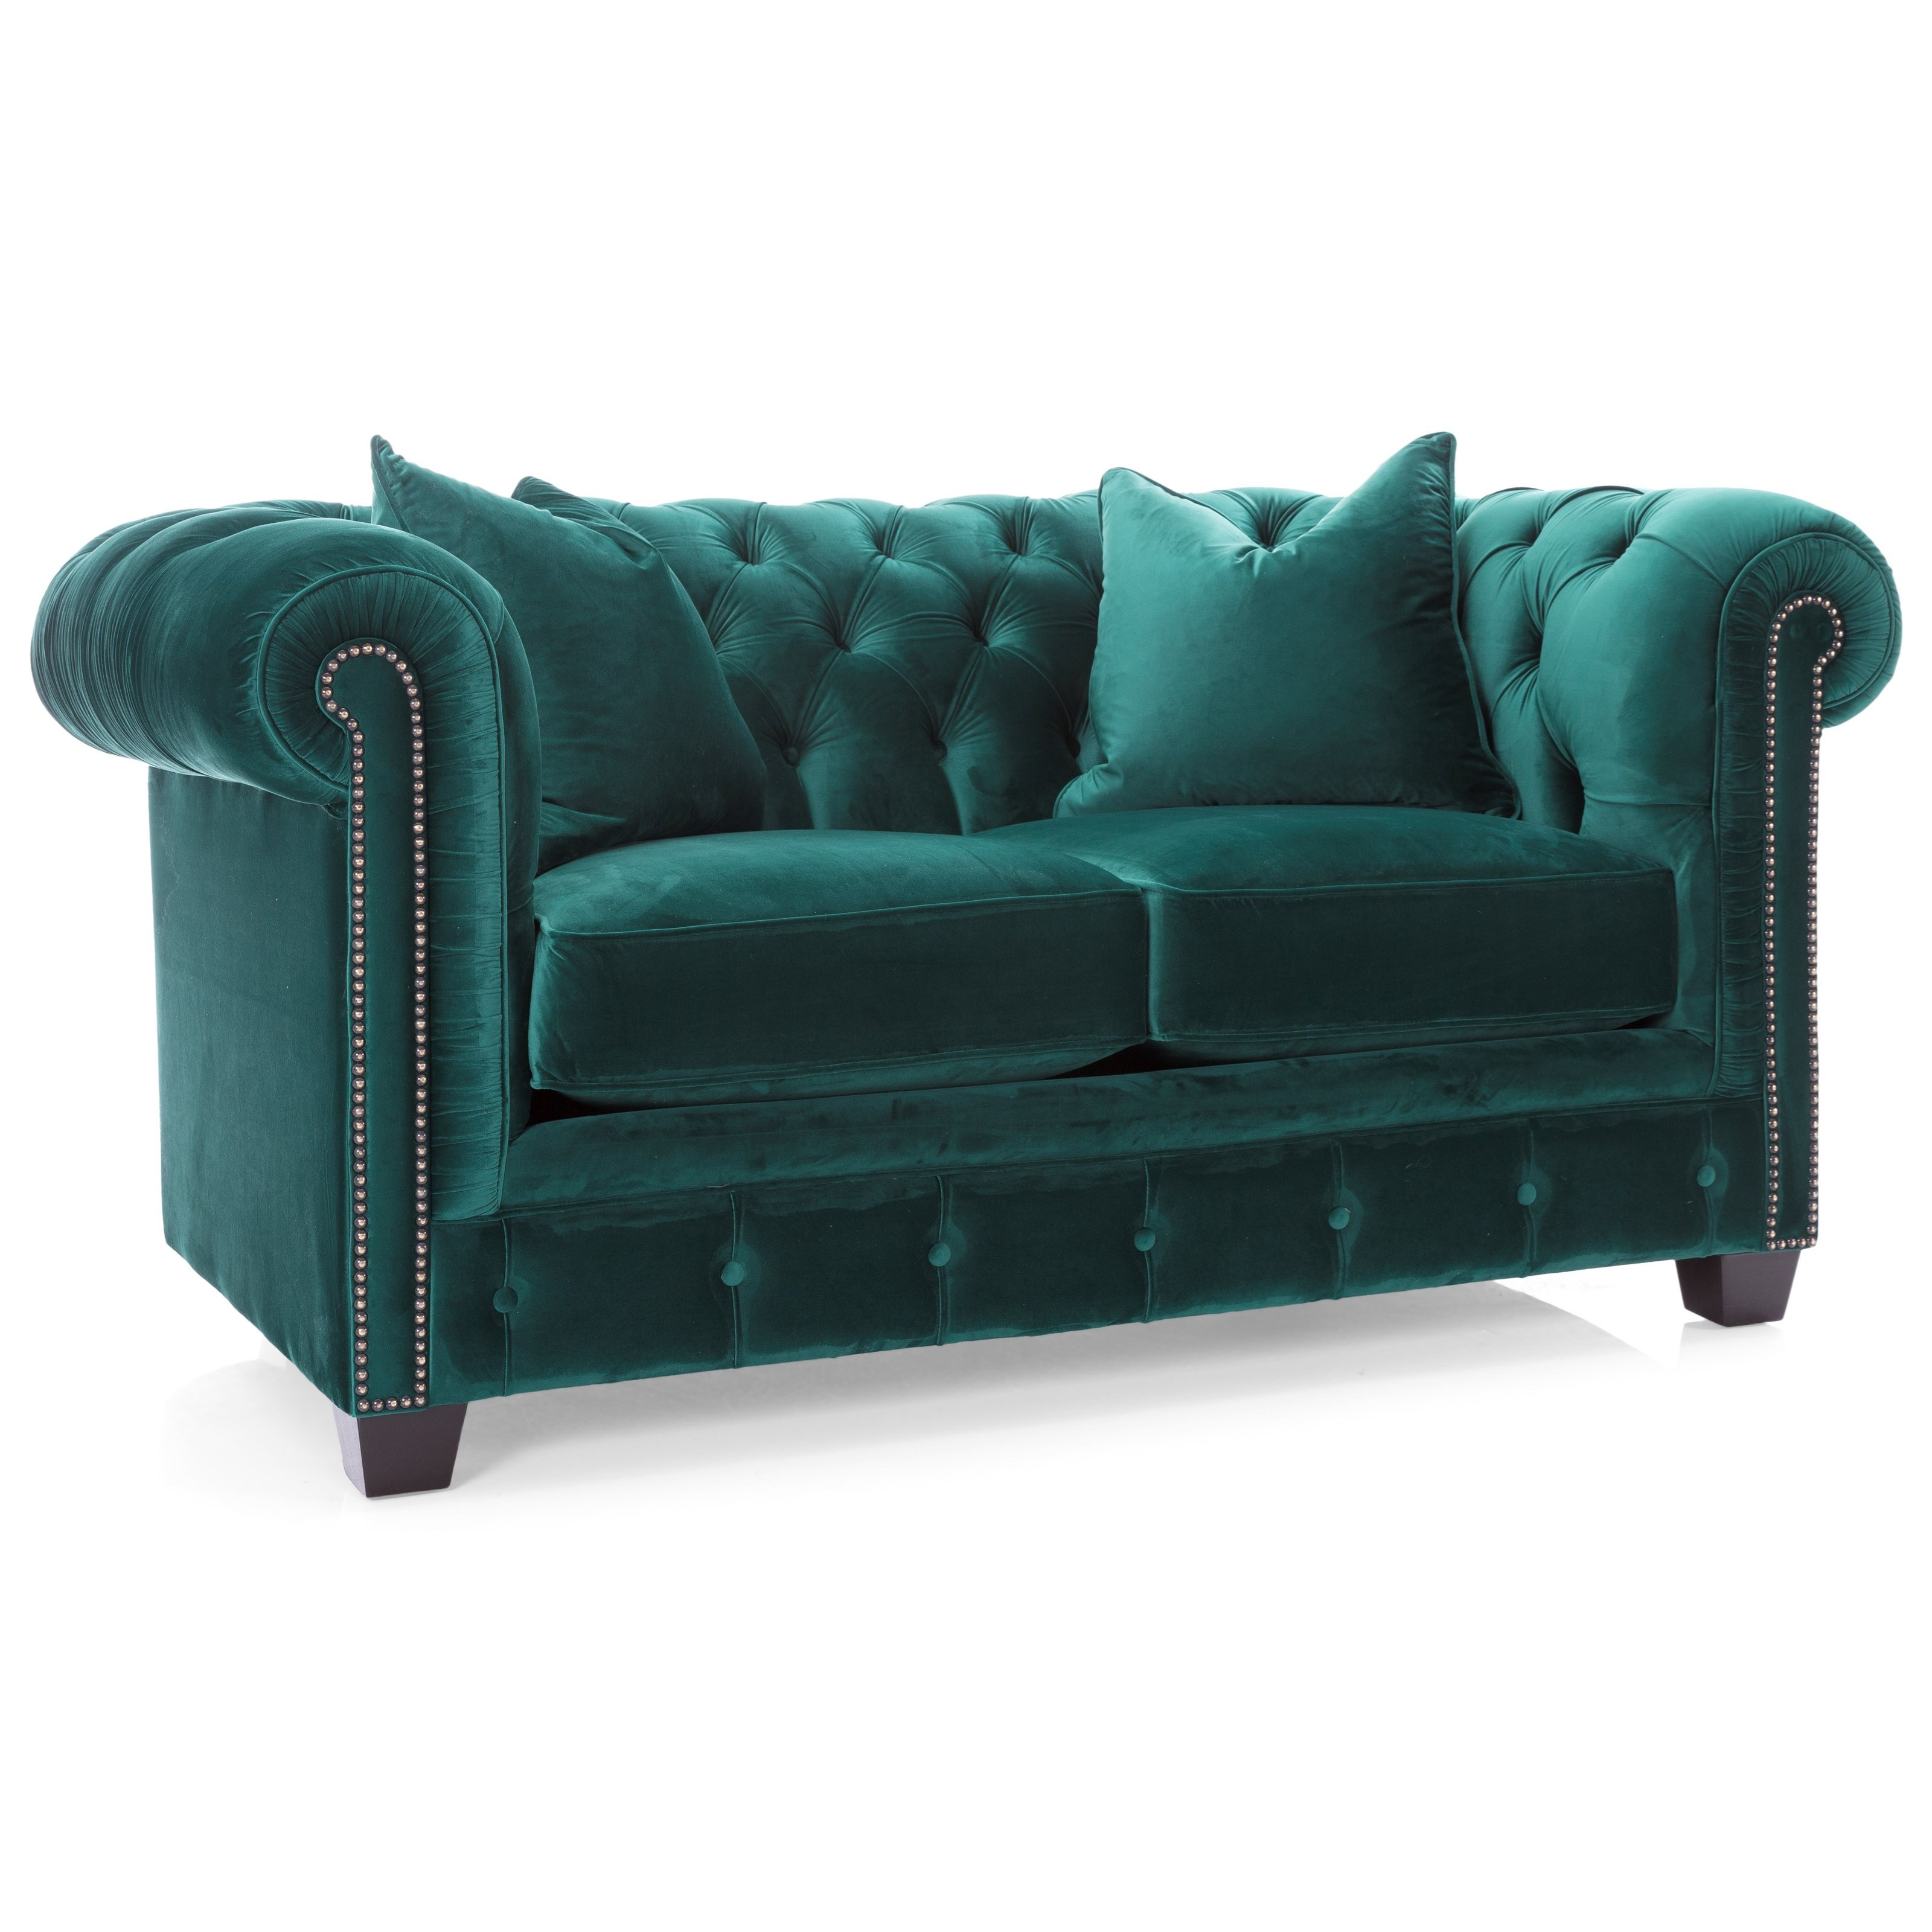 2230 Series Loveseat by Decor-Rest at Johnny Janosik